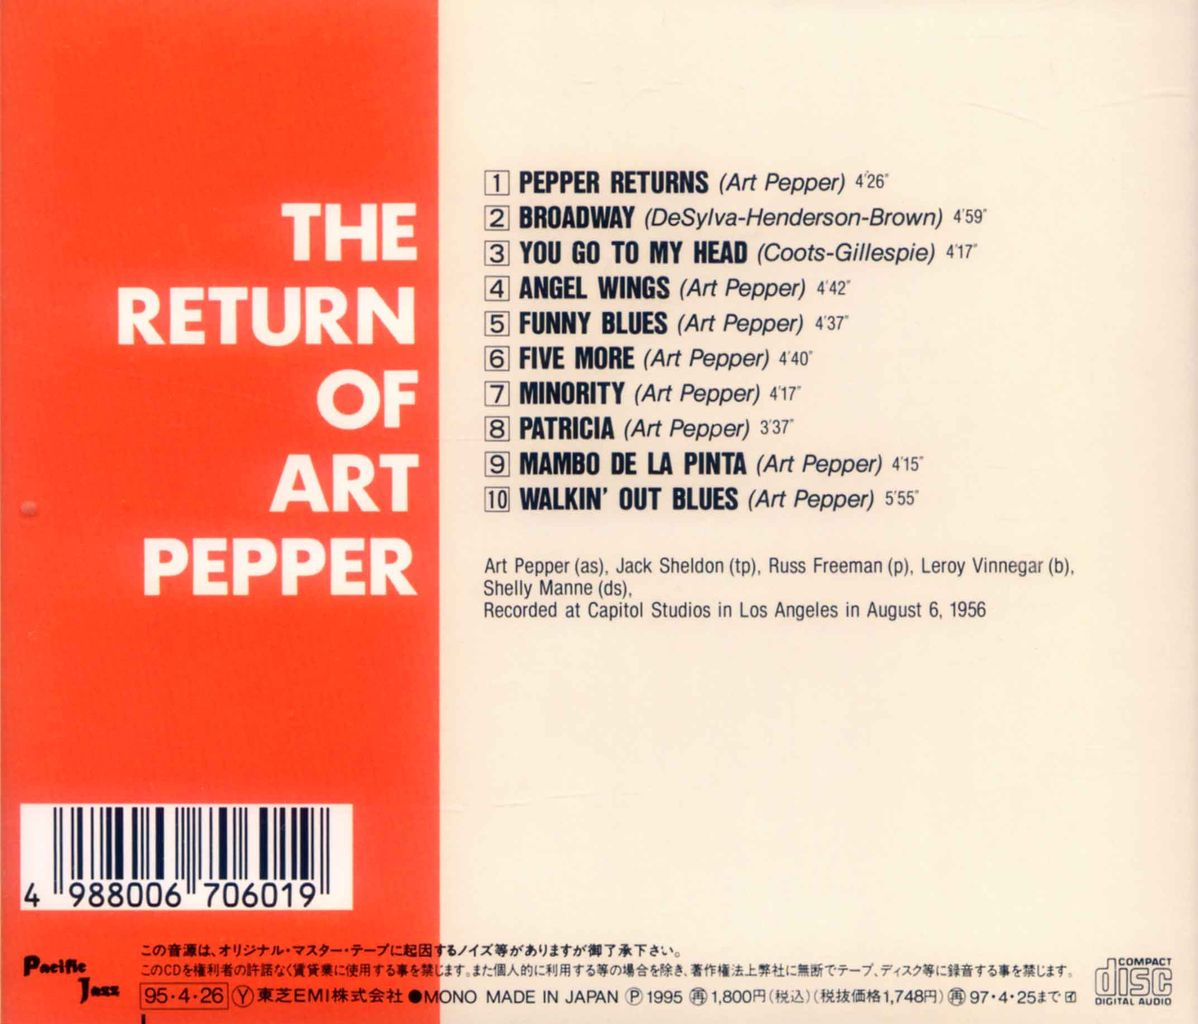 THE RETURN OF ART PEPPER-2